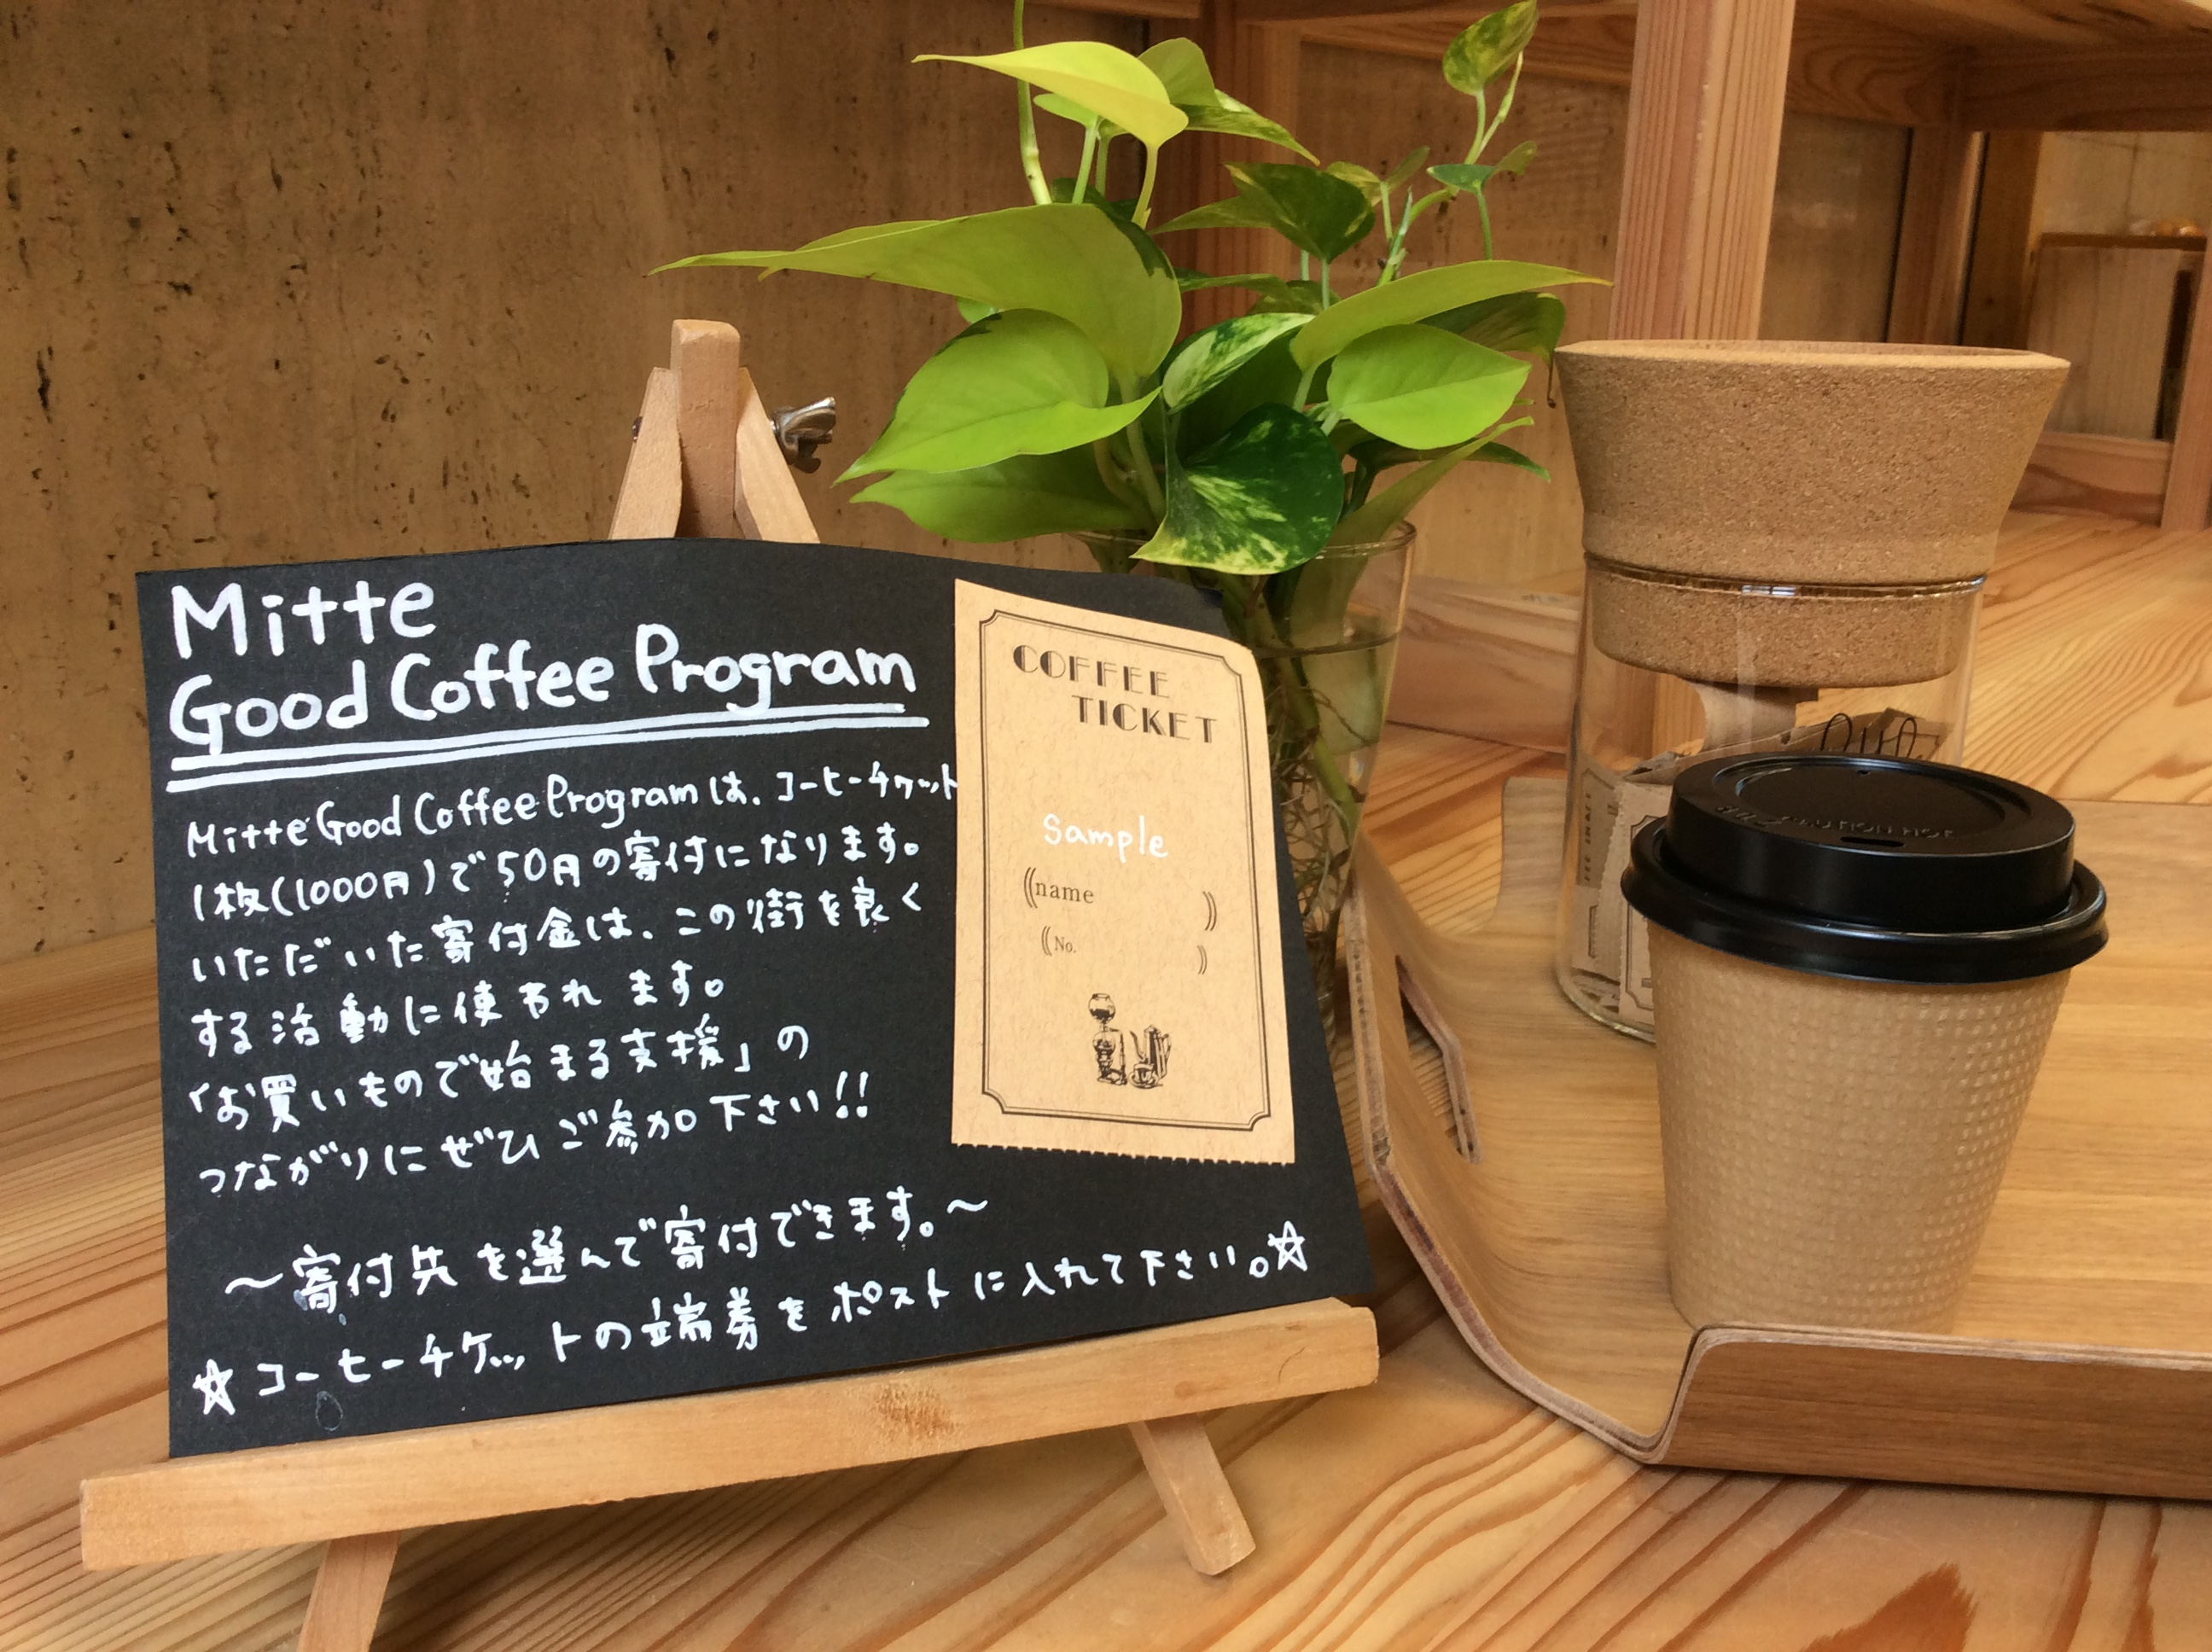 Mitte Good Coffee Program 7月のご報告